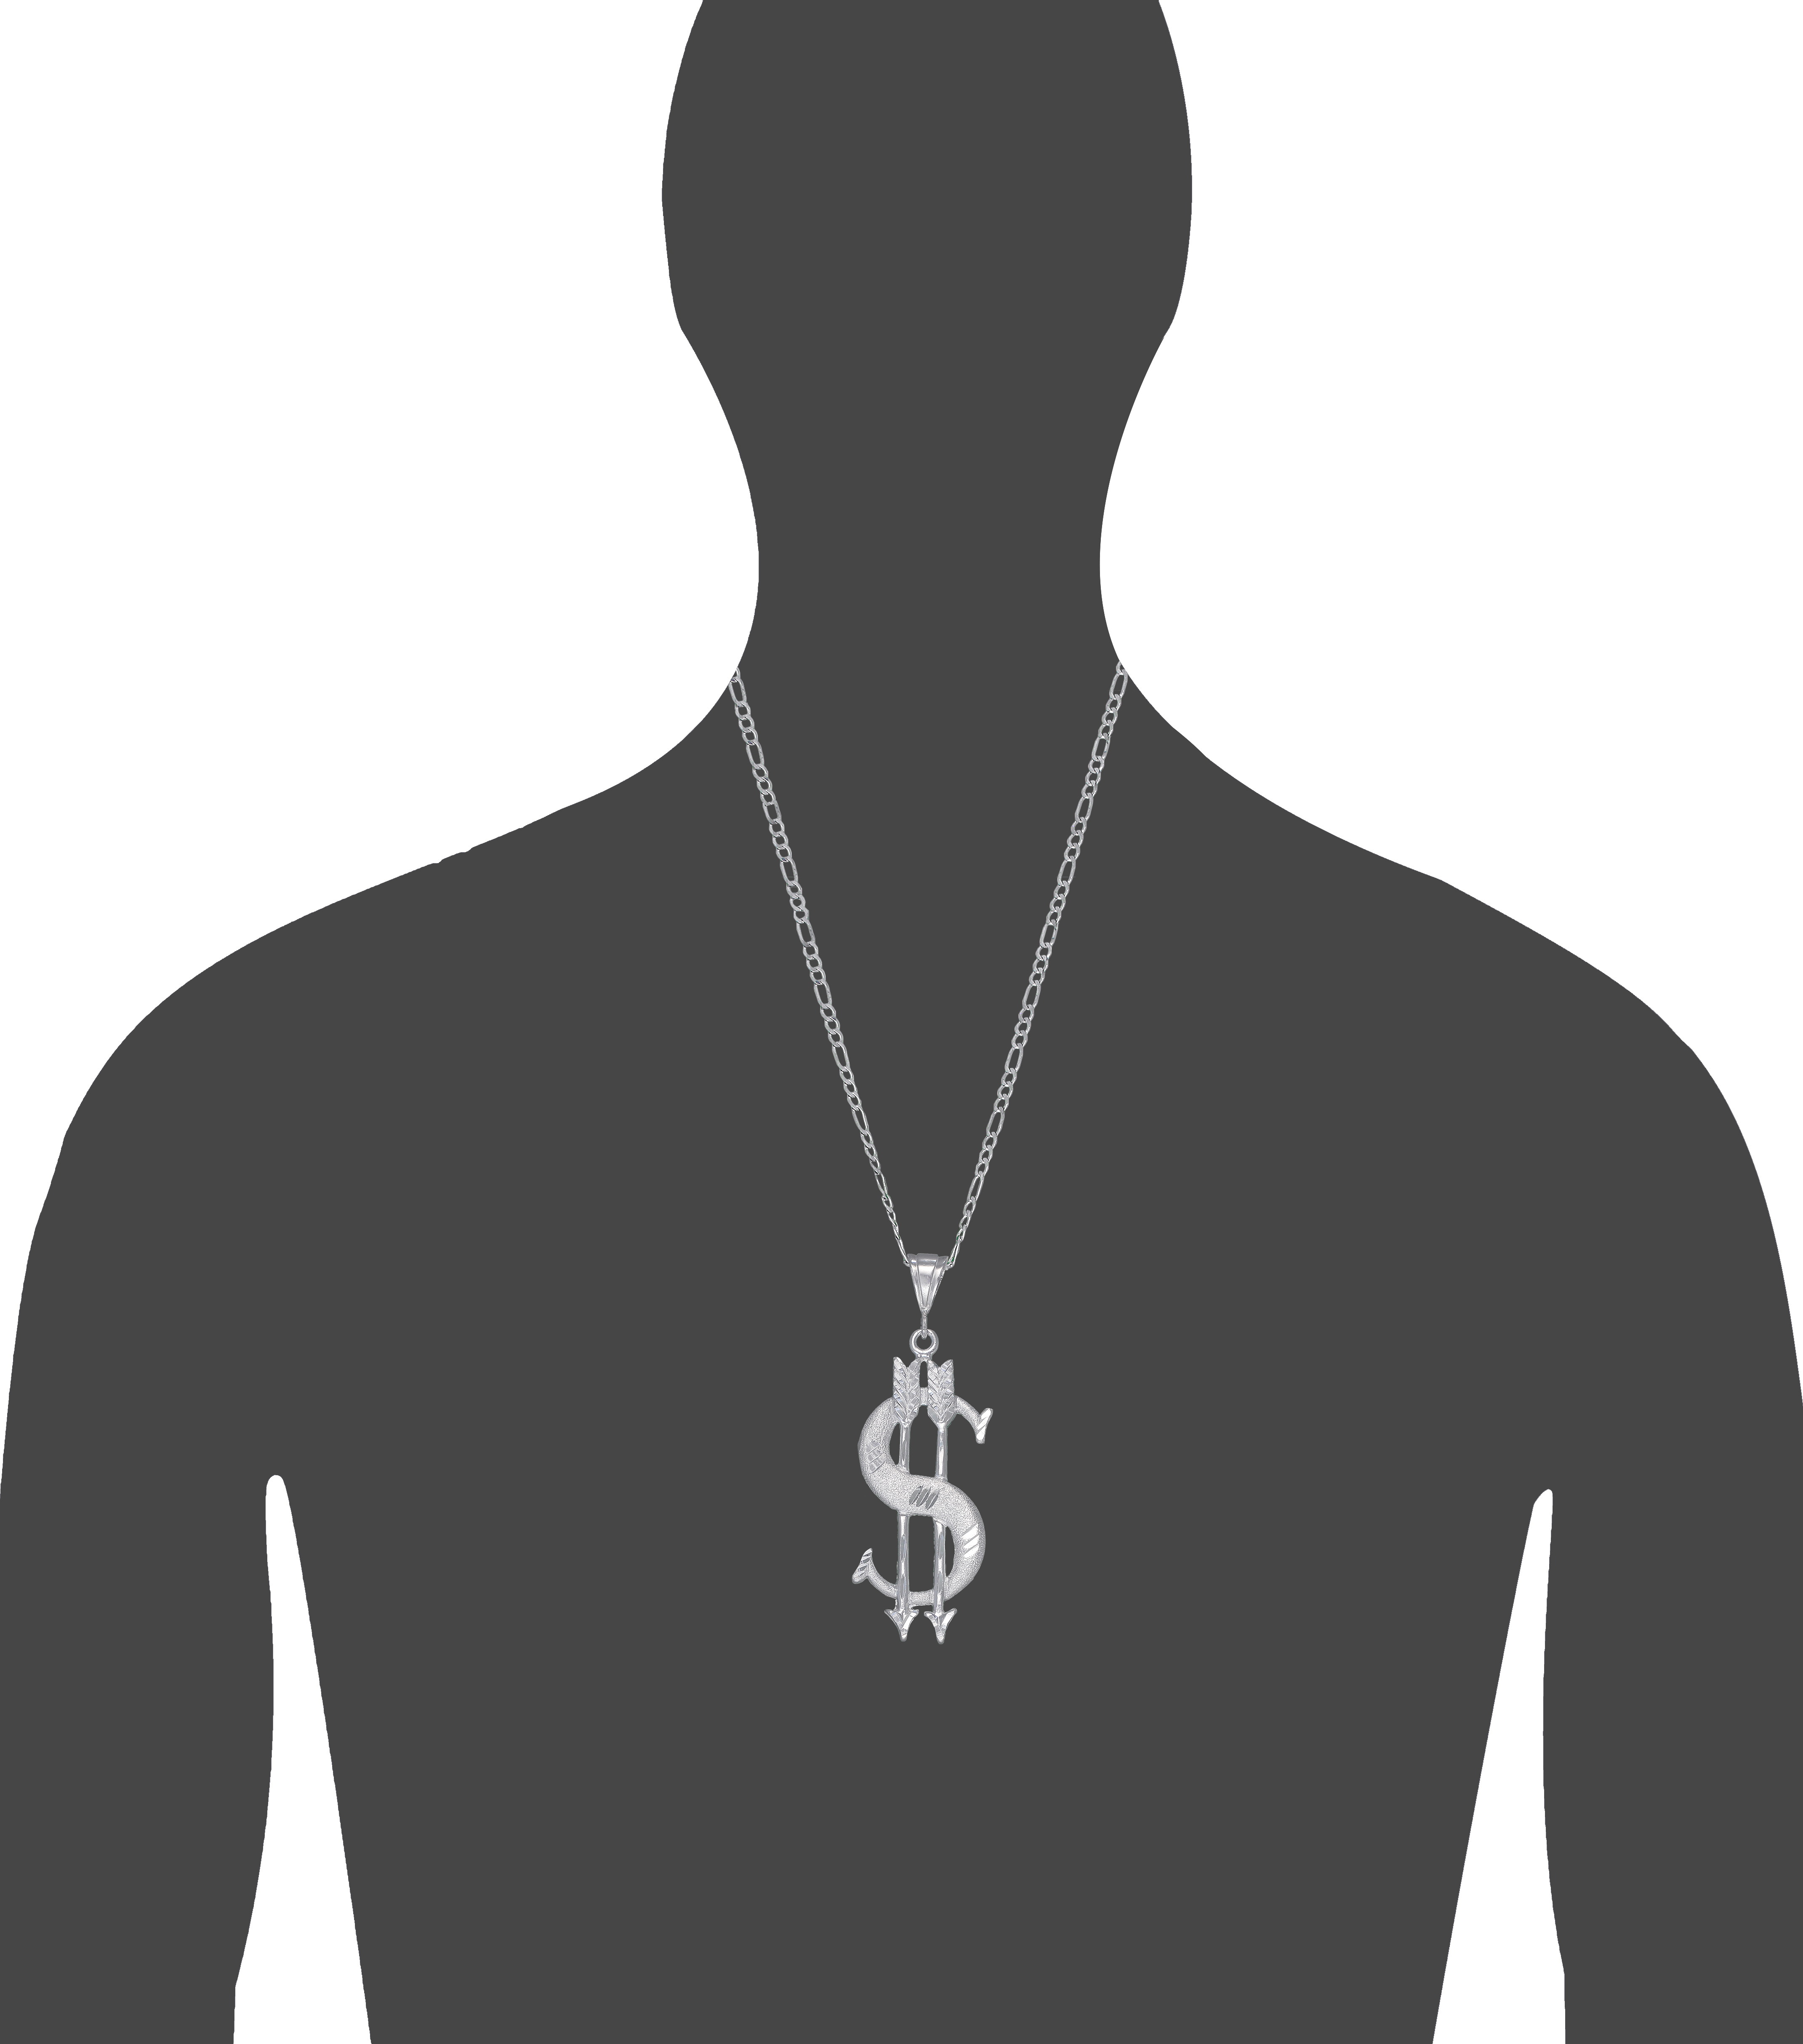 Sterling Silver Arrow and Dollar Sign Charm Pendant Necklace 2.2 Inches 3.7 Grams with Diamond Cut Finish and 24 Inch Figaro Chain